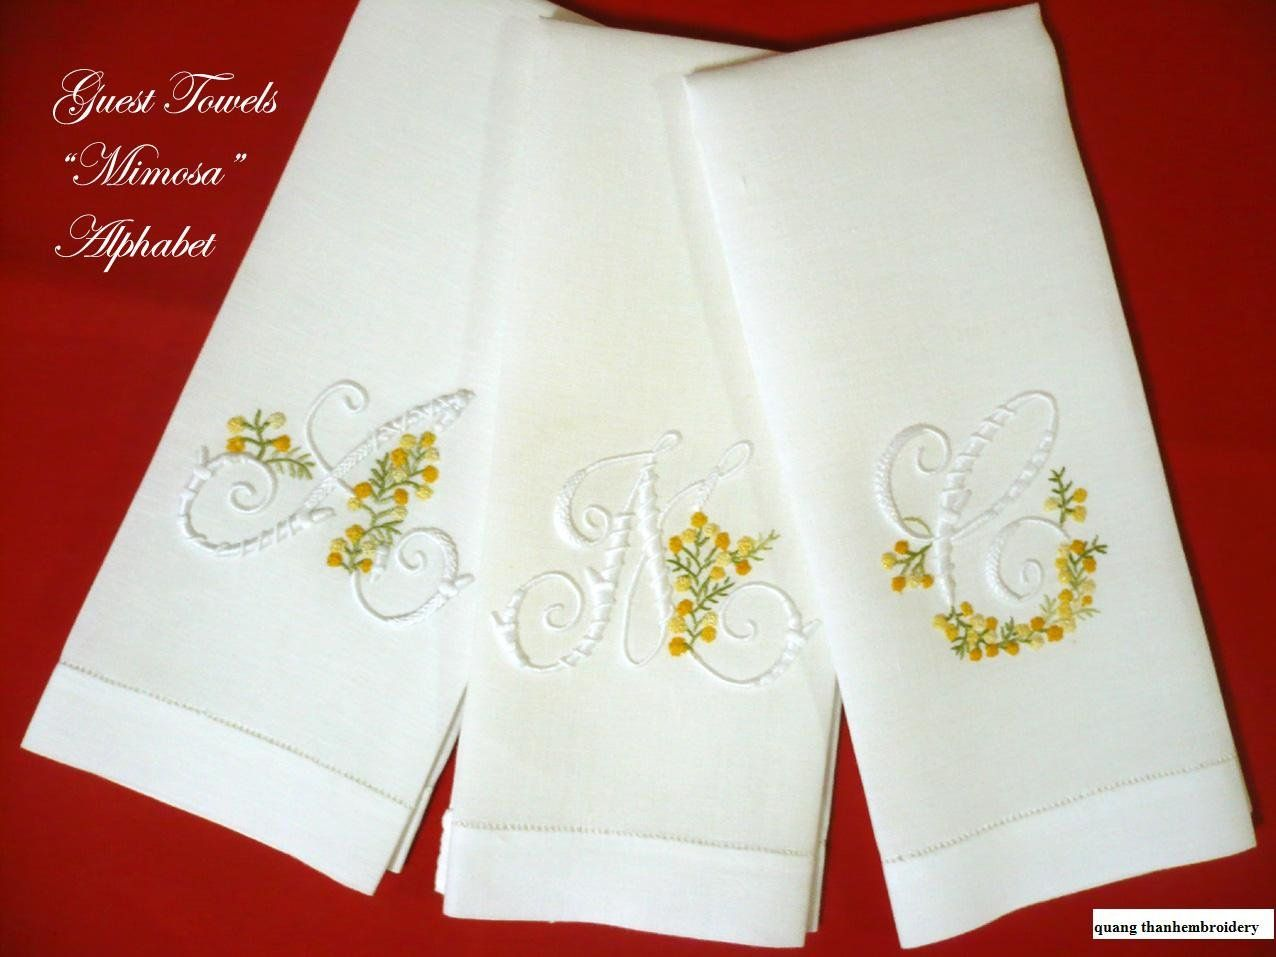 Embroidery Victorian Dish Towels | Embroidery.com: Hand Towels U2013 Embroidery  Designs, Embroidery